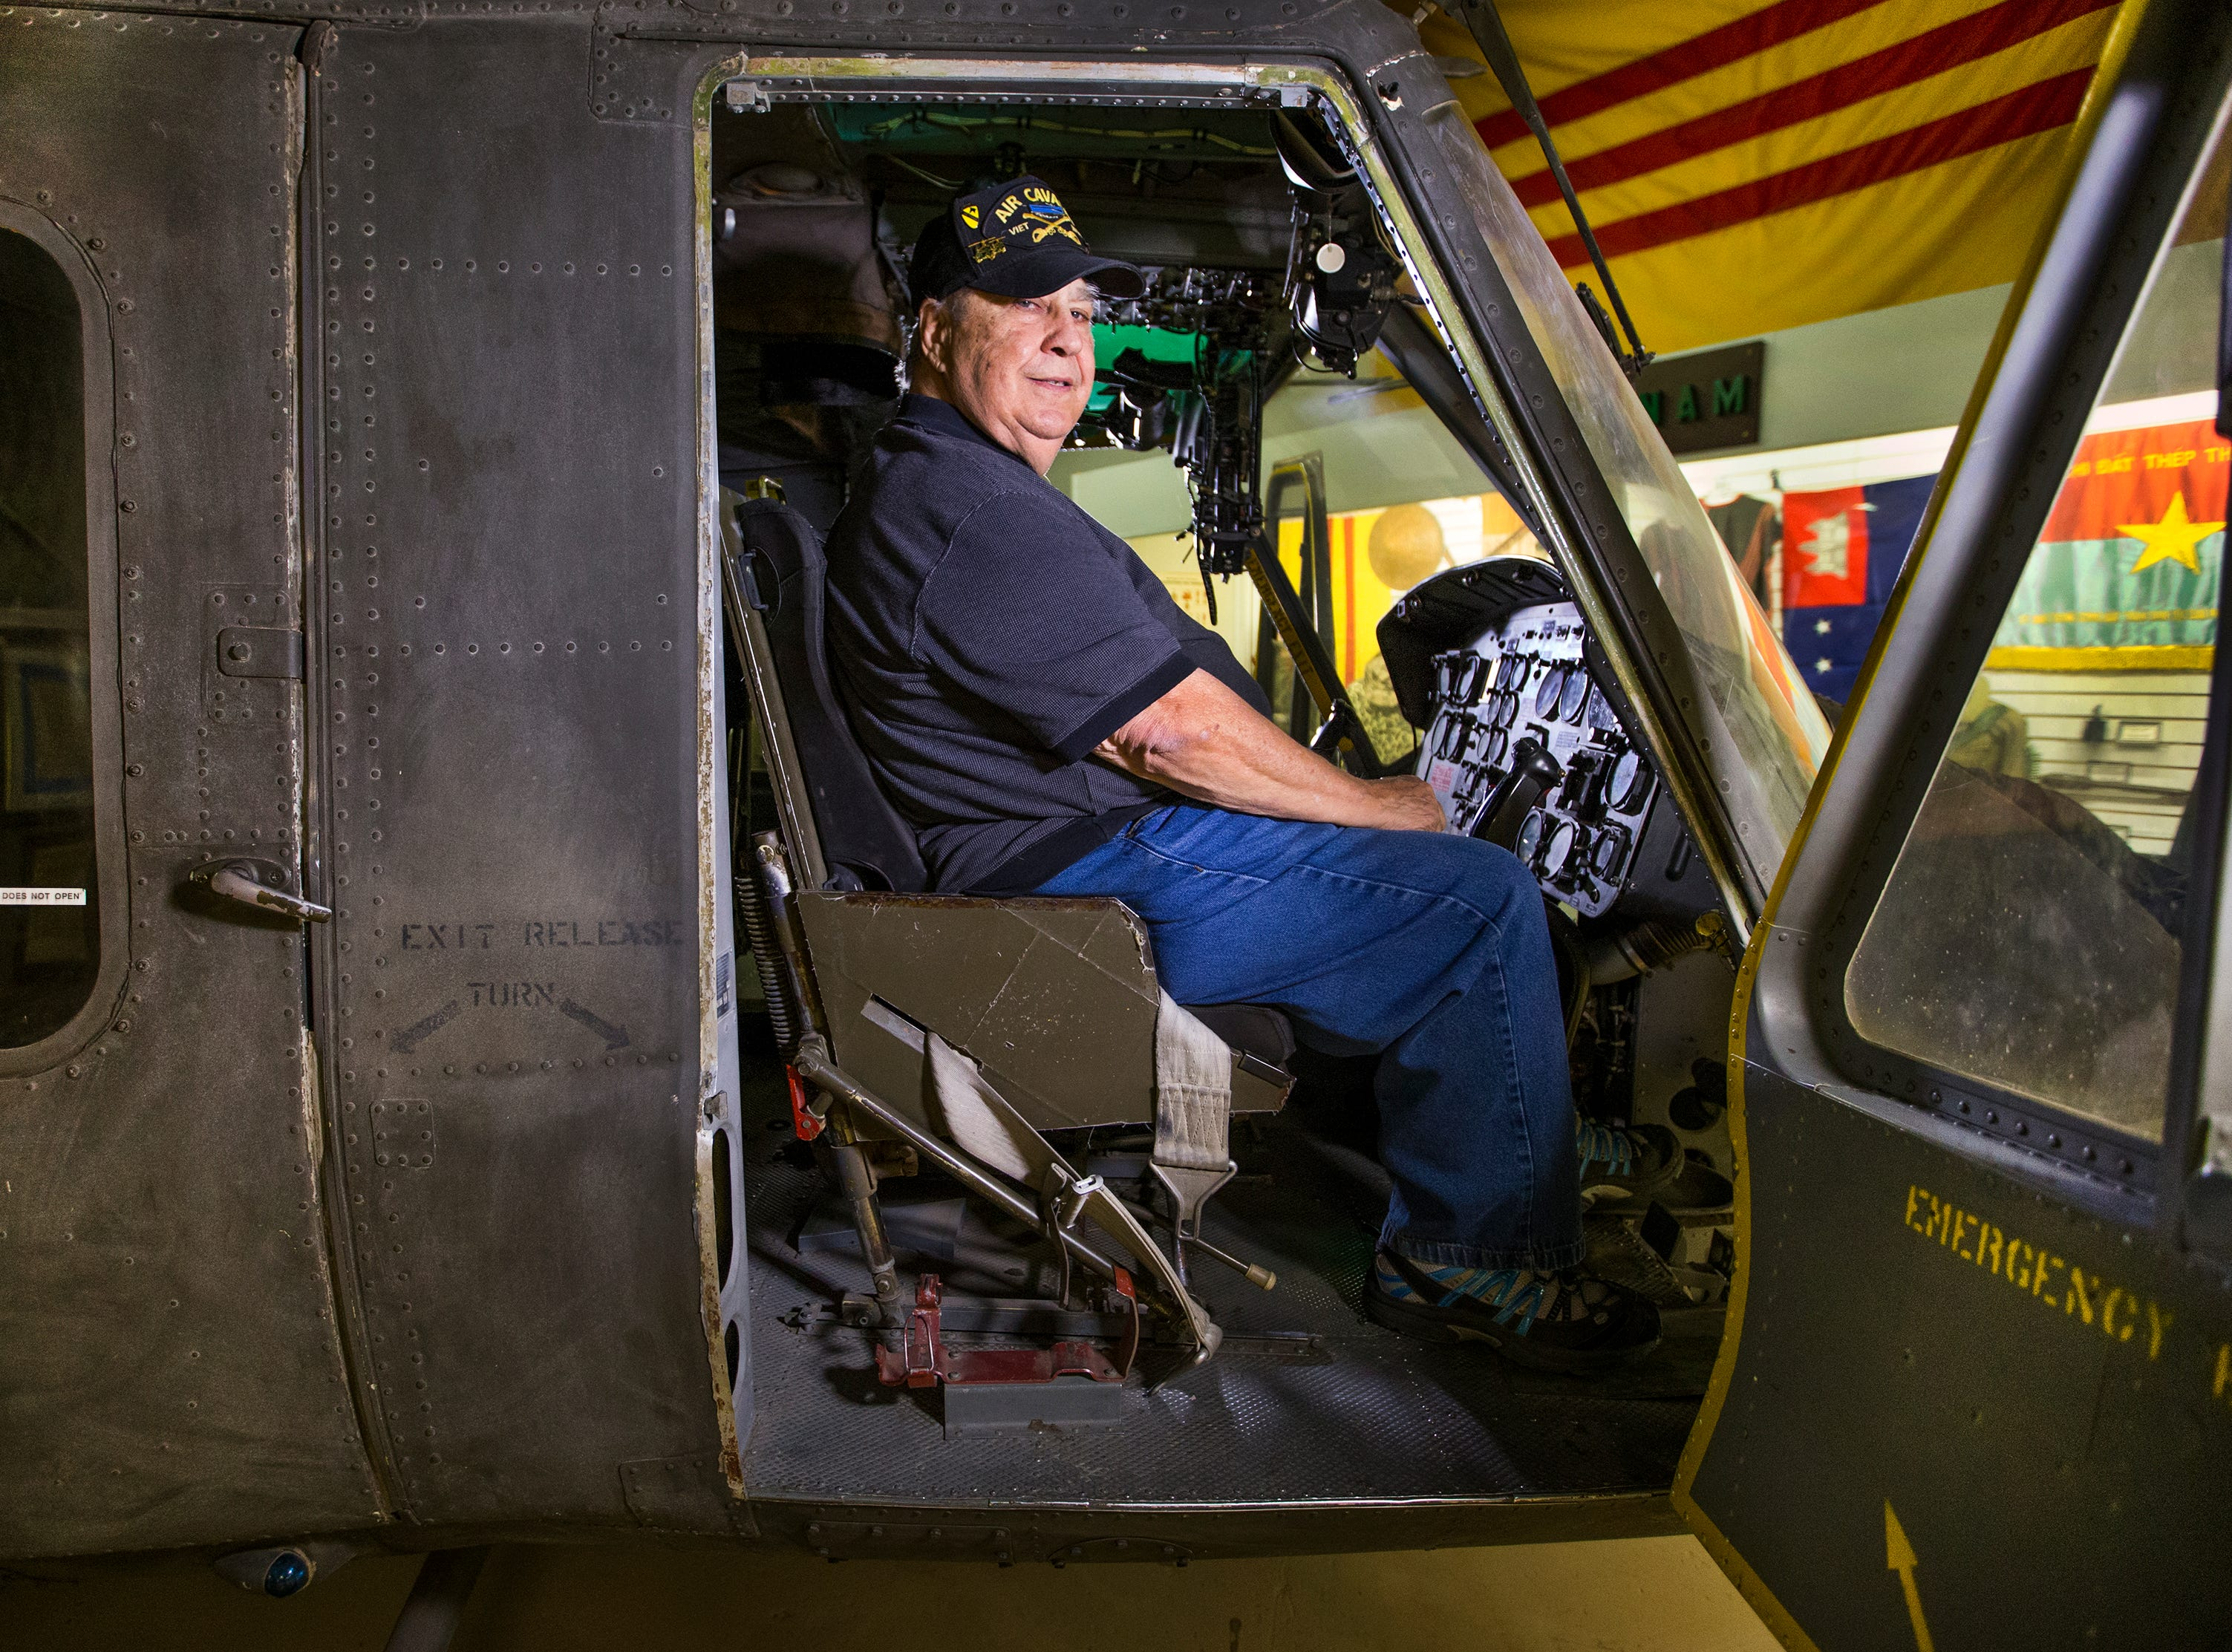 Col. Joseph Abodeely has headed the award-winning Arizona Military Museum, sponsored by the Arizona National Guard Historical Society, since 1980. He and the museum have been activity involved in community events honoring veterans including Arizona's Vietnam veterans who are the largest group of living veterans.  He sits Nov. 21, 2018, in a Bell UH-1 helicopter at the museum that flew in the Vietnam War. The museum is located on the Arizona National Guard Papago Park Military Reservation at 5636 E McDowell Road in Phoenix and admission is free.